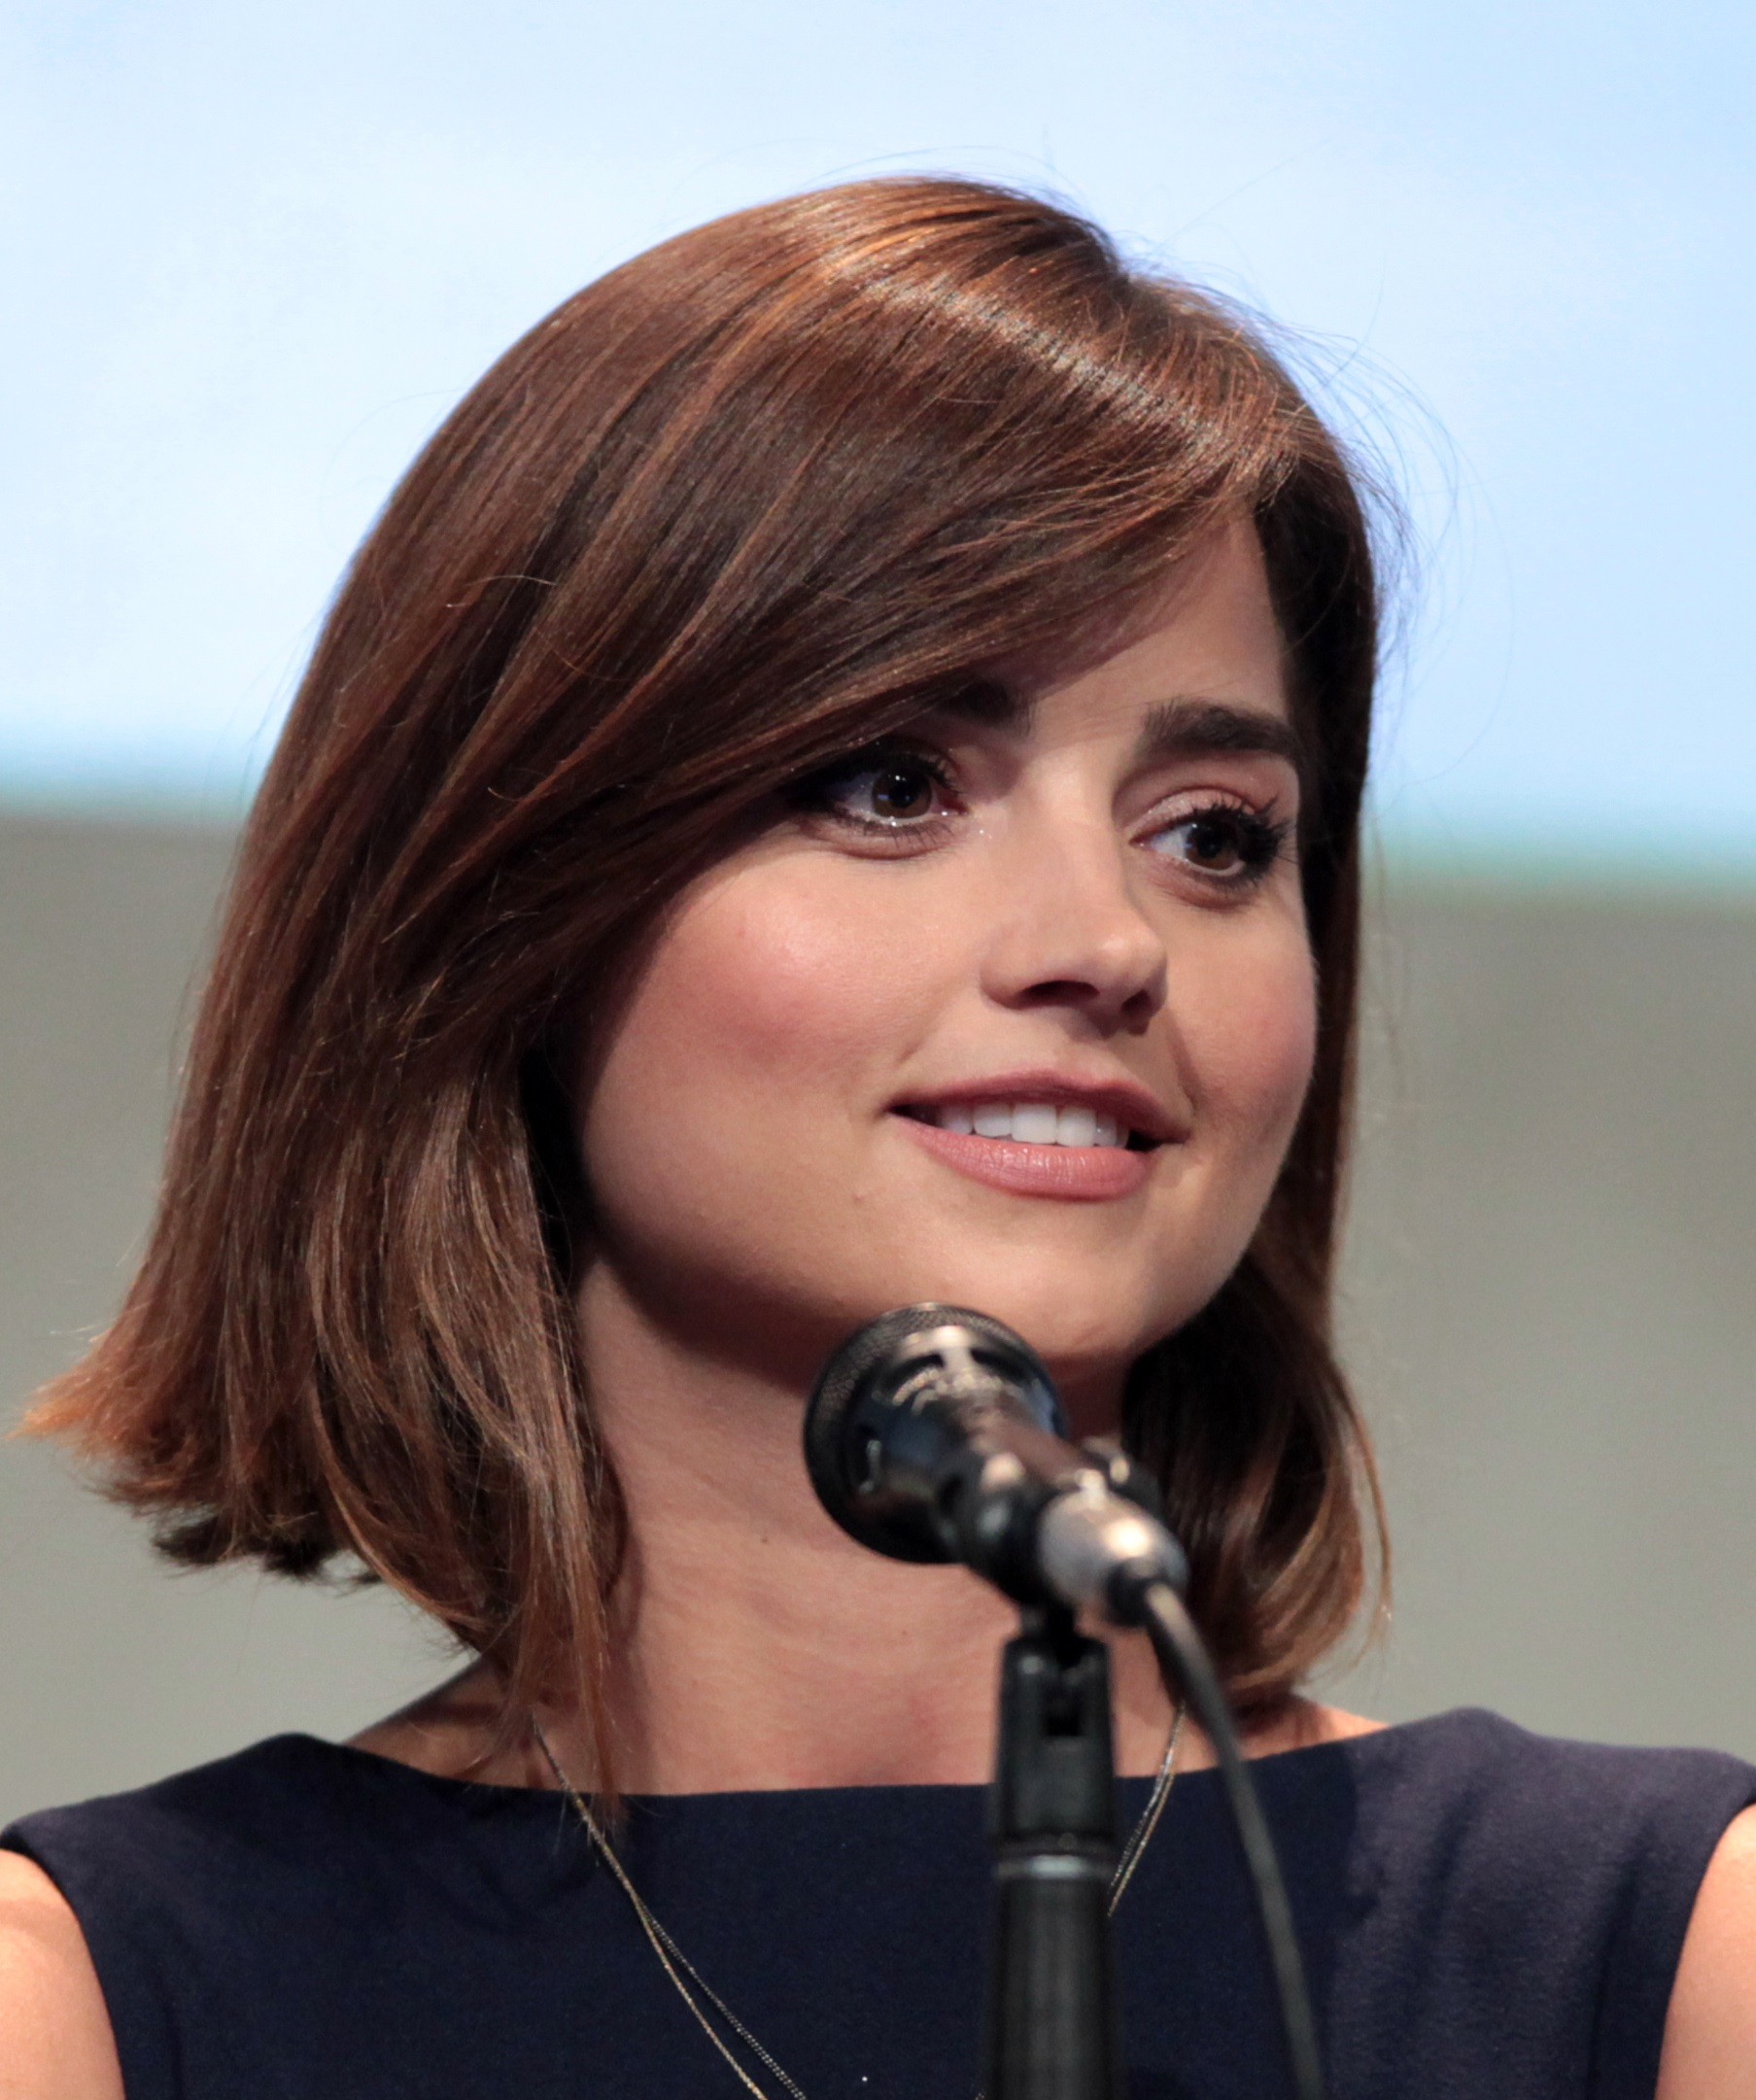 Jenna Coleman earned a  million dollar salary, leaving the net worth at 1 million in 2017